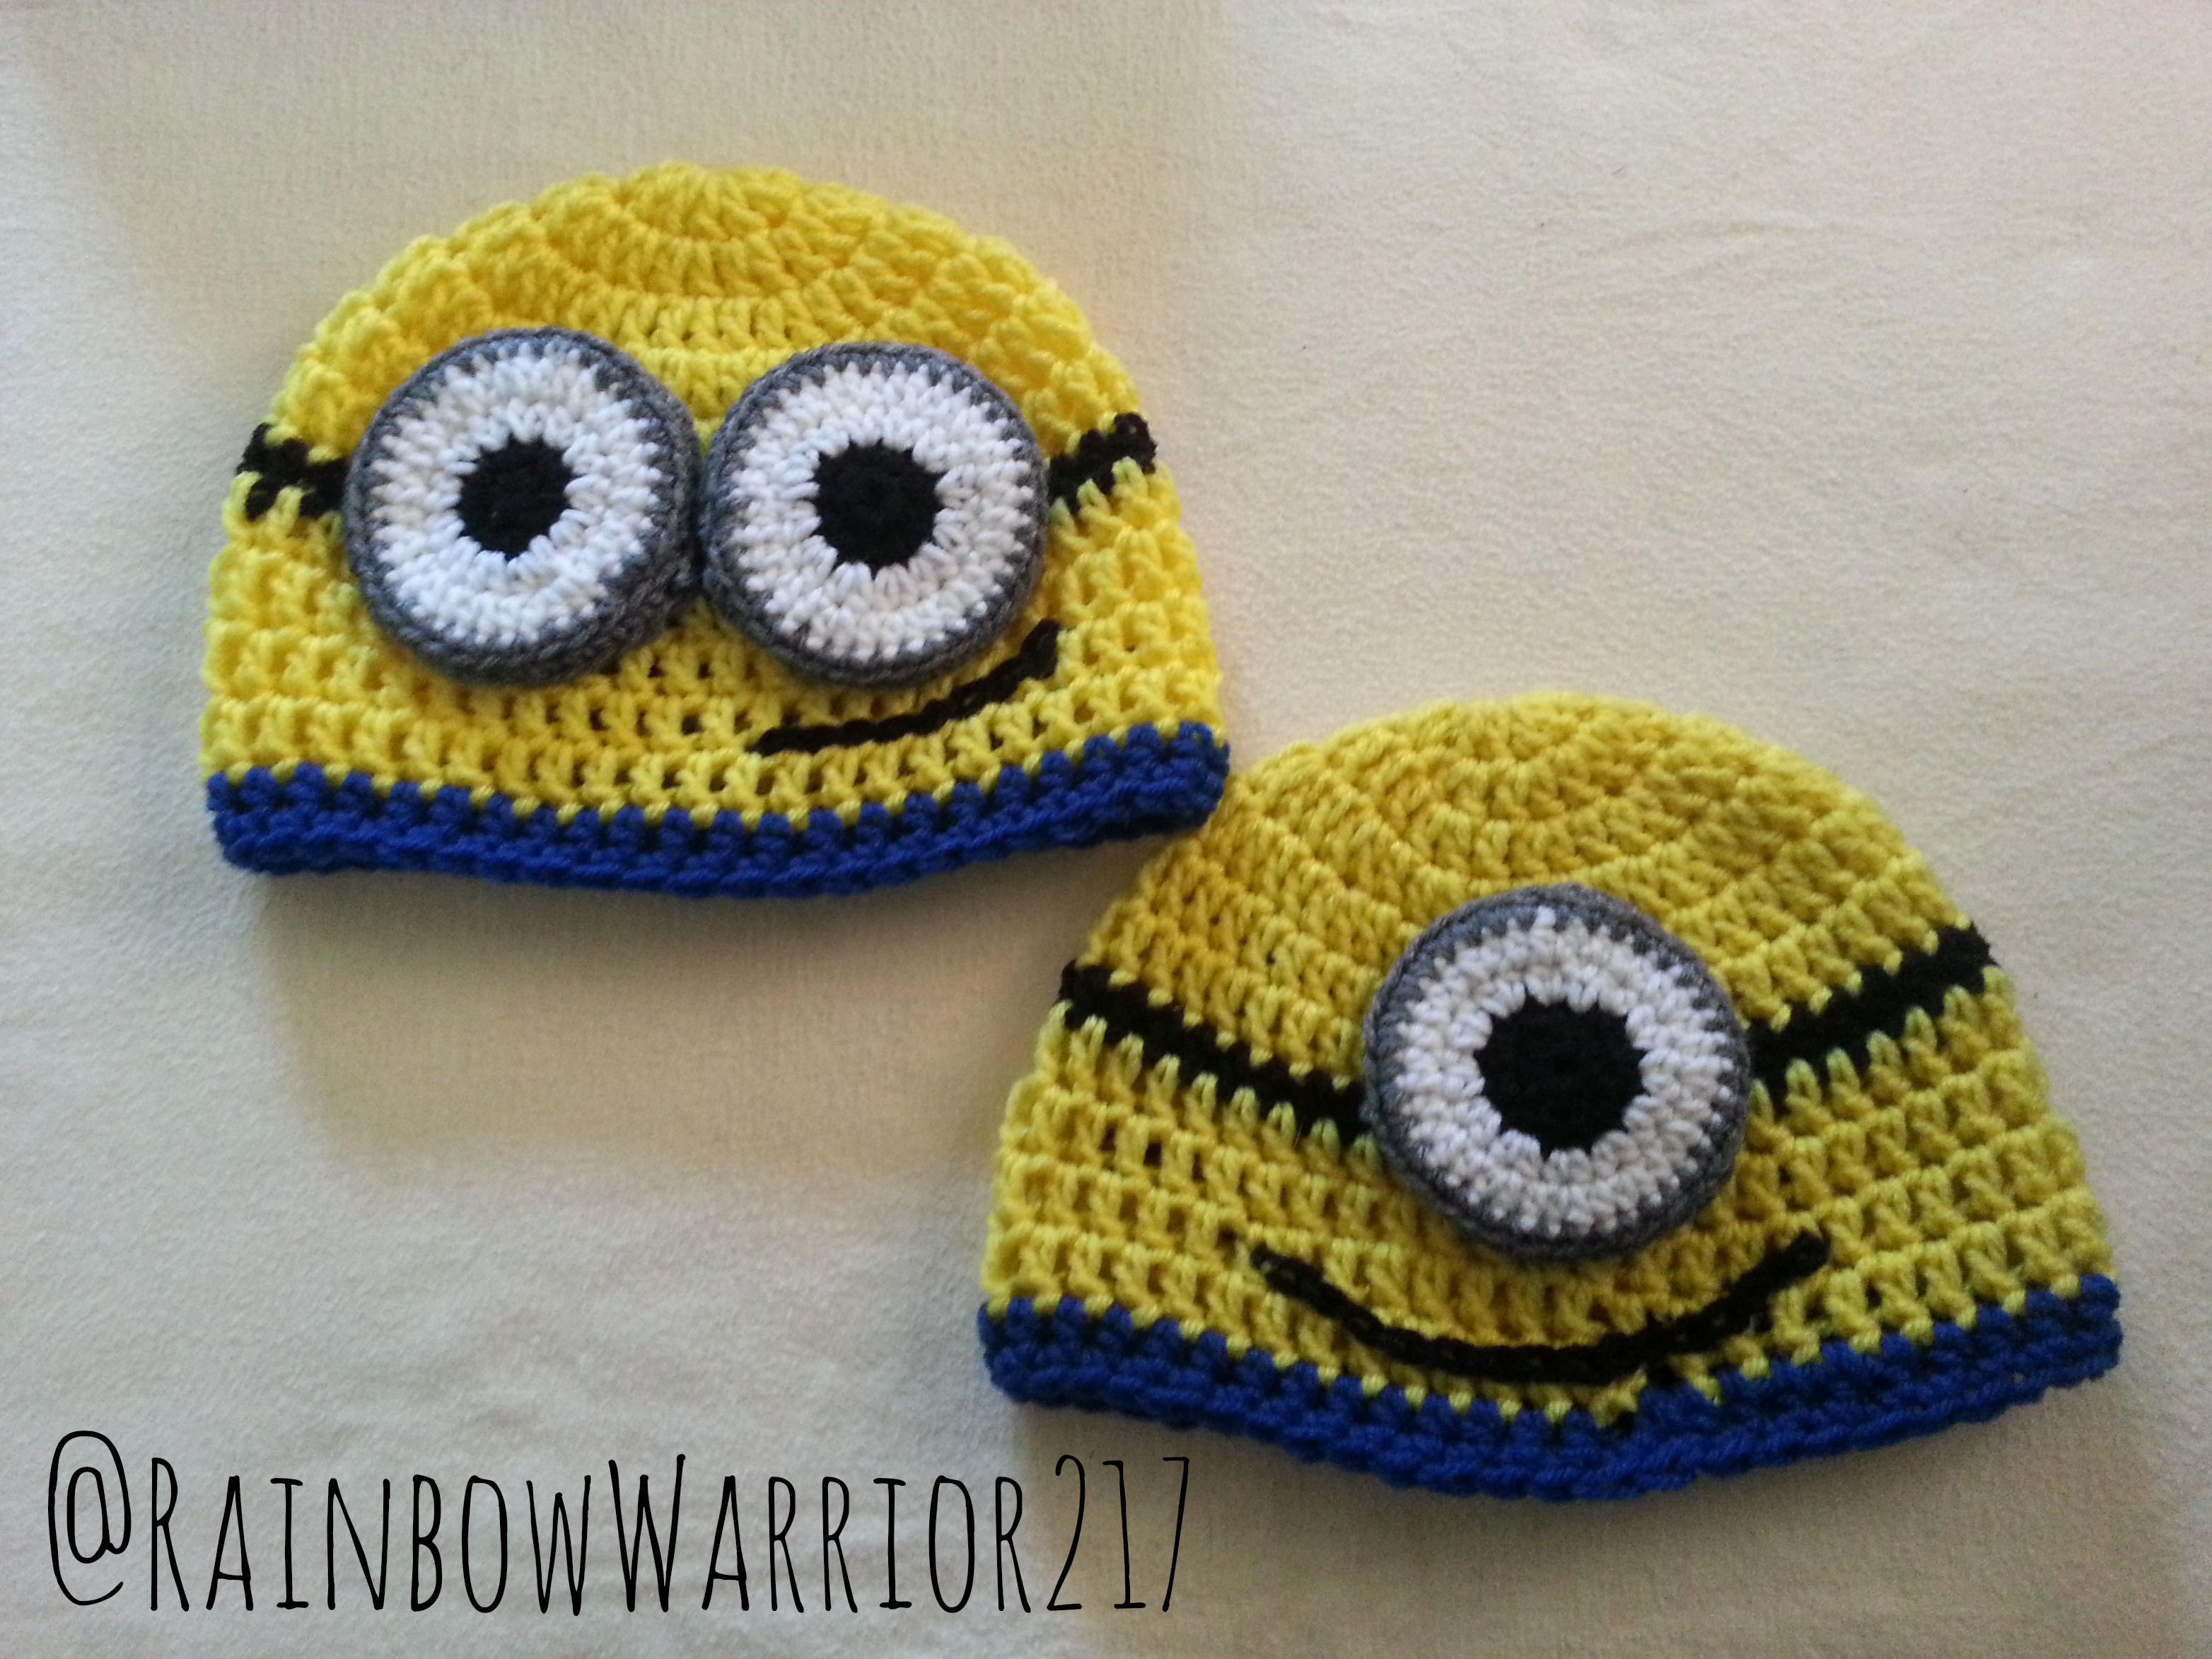 Free Crochet Pattern Minion Beanie : Minion Beanie Crochet Pattern Rainbow Warrior